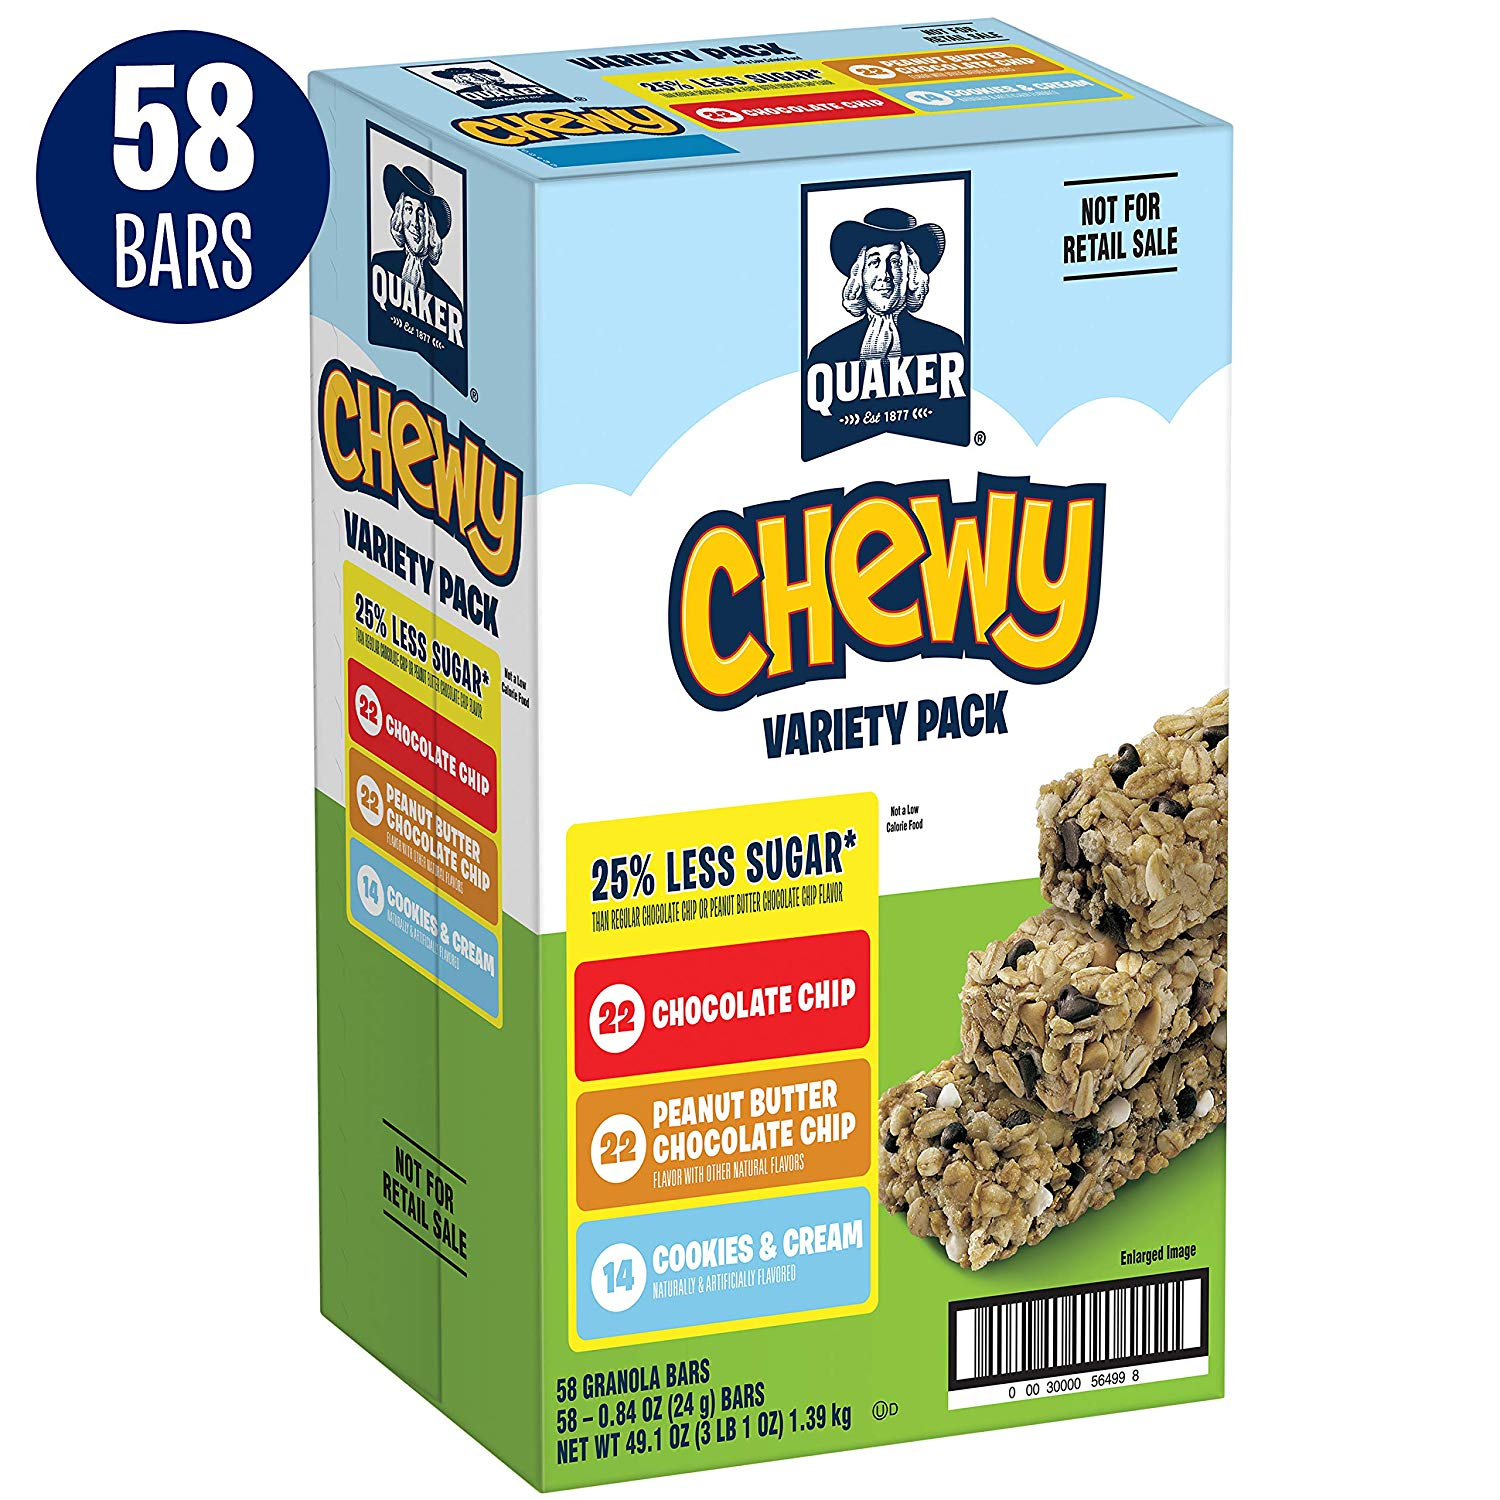 58 Quaker Chewy Granola Bars only $6.90 with coupon! (was $9.86)